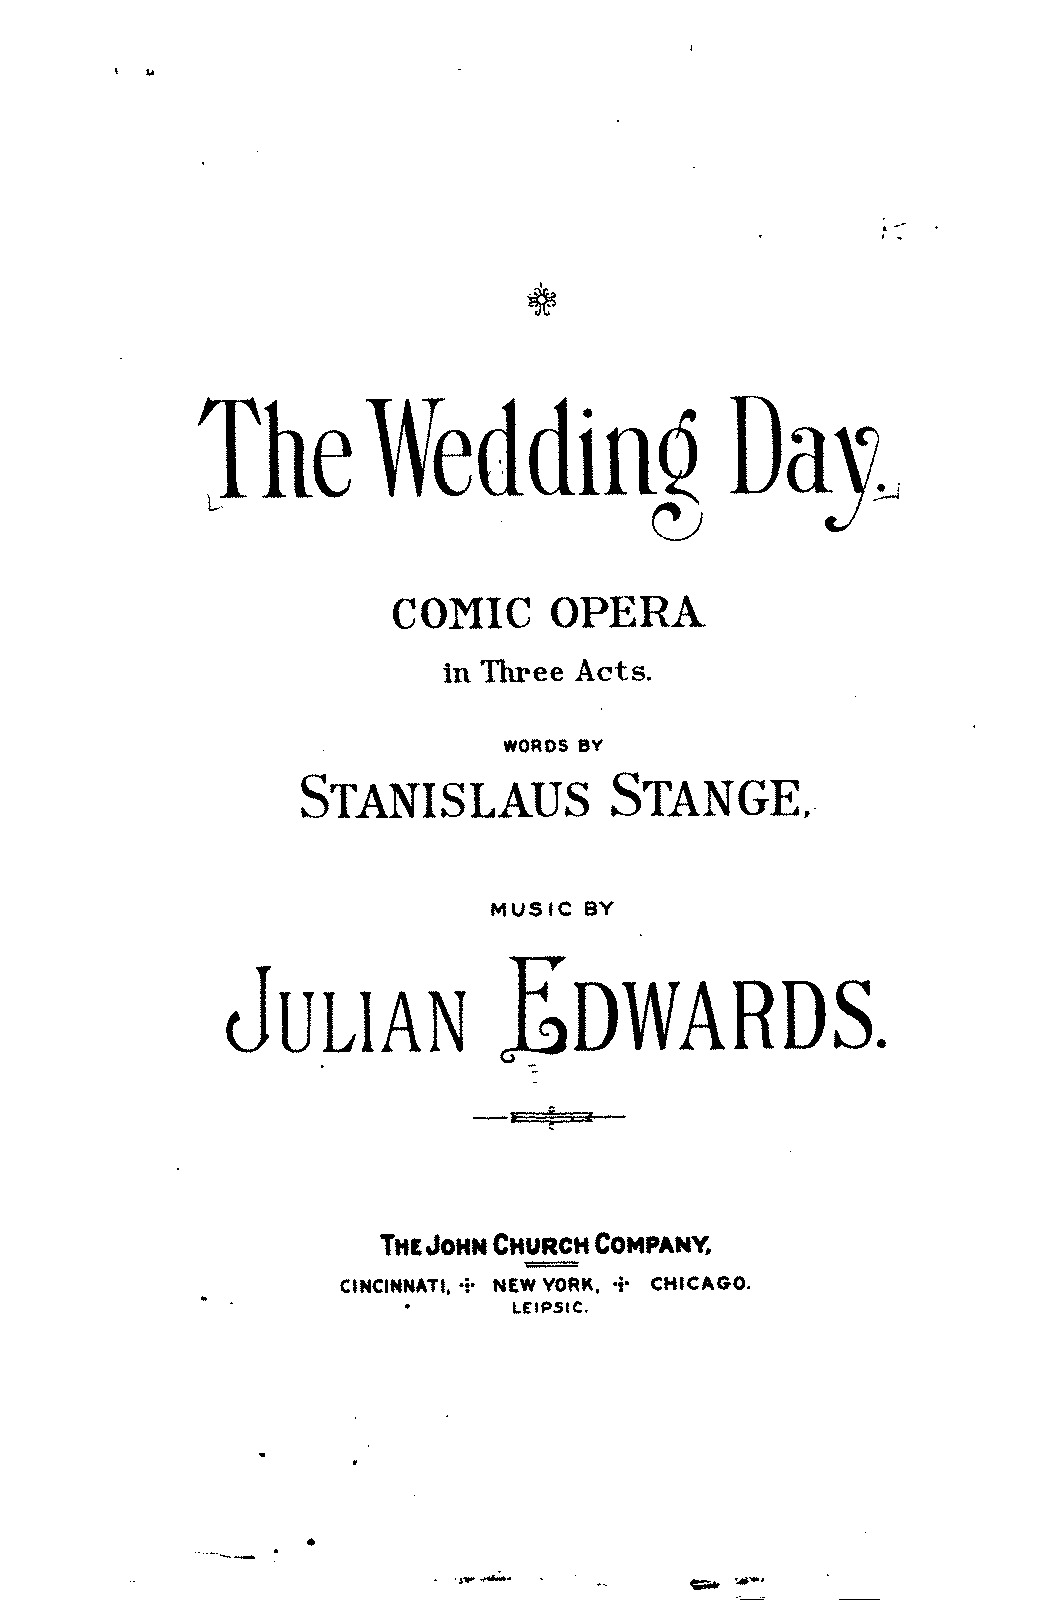 PMLP653863-JEdward The Wedding Day vocalscore.pdf